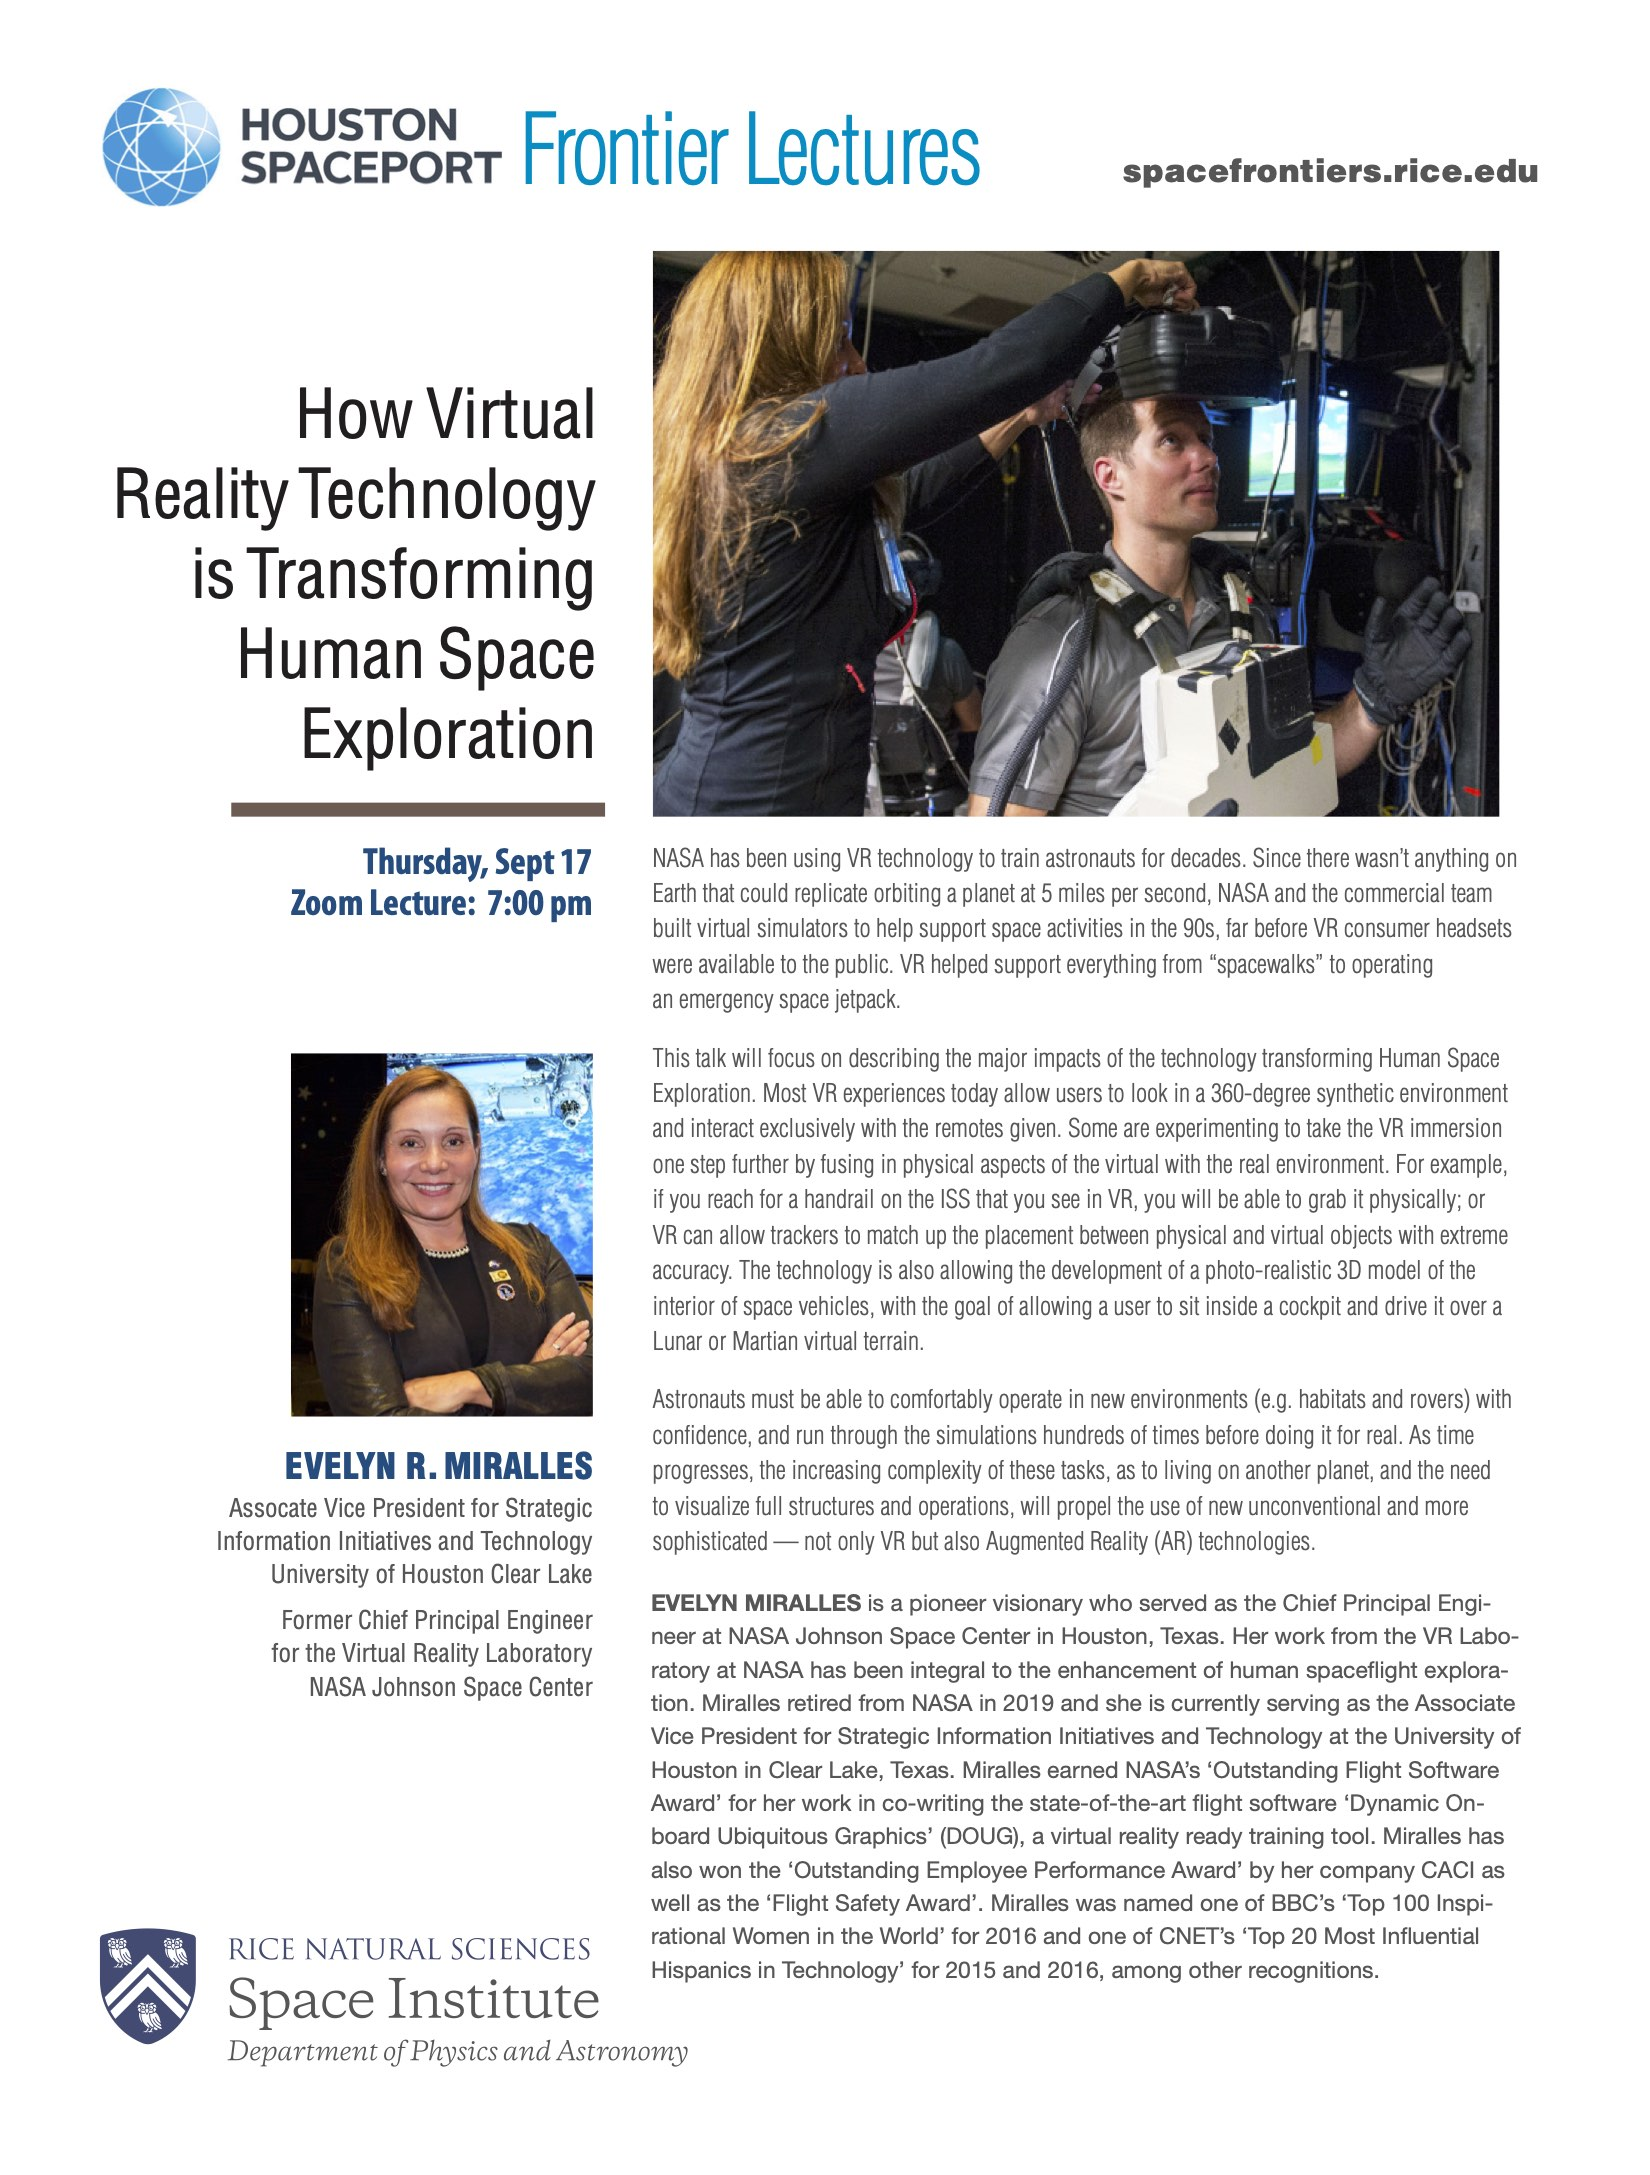 Poster of Evelyn Miralles' presentation on How VR Technology is Changing Human Space Exploration